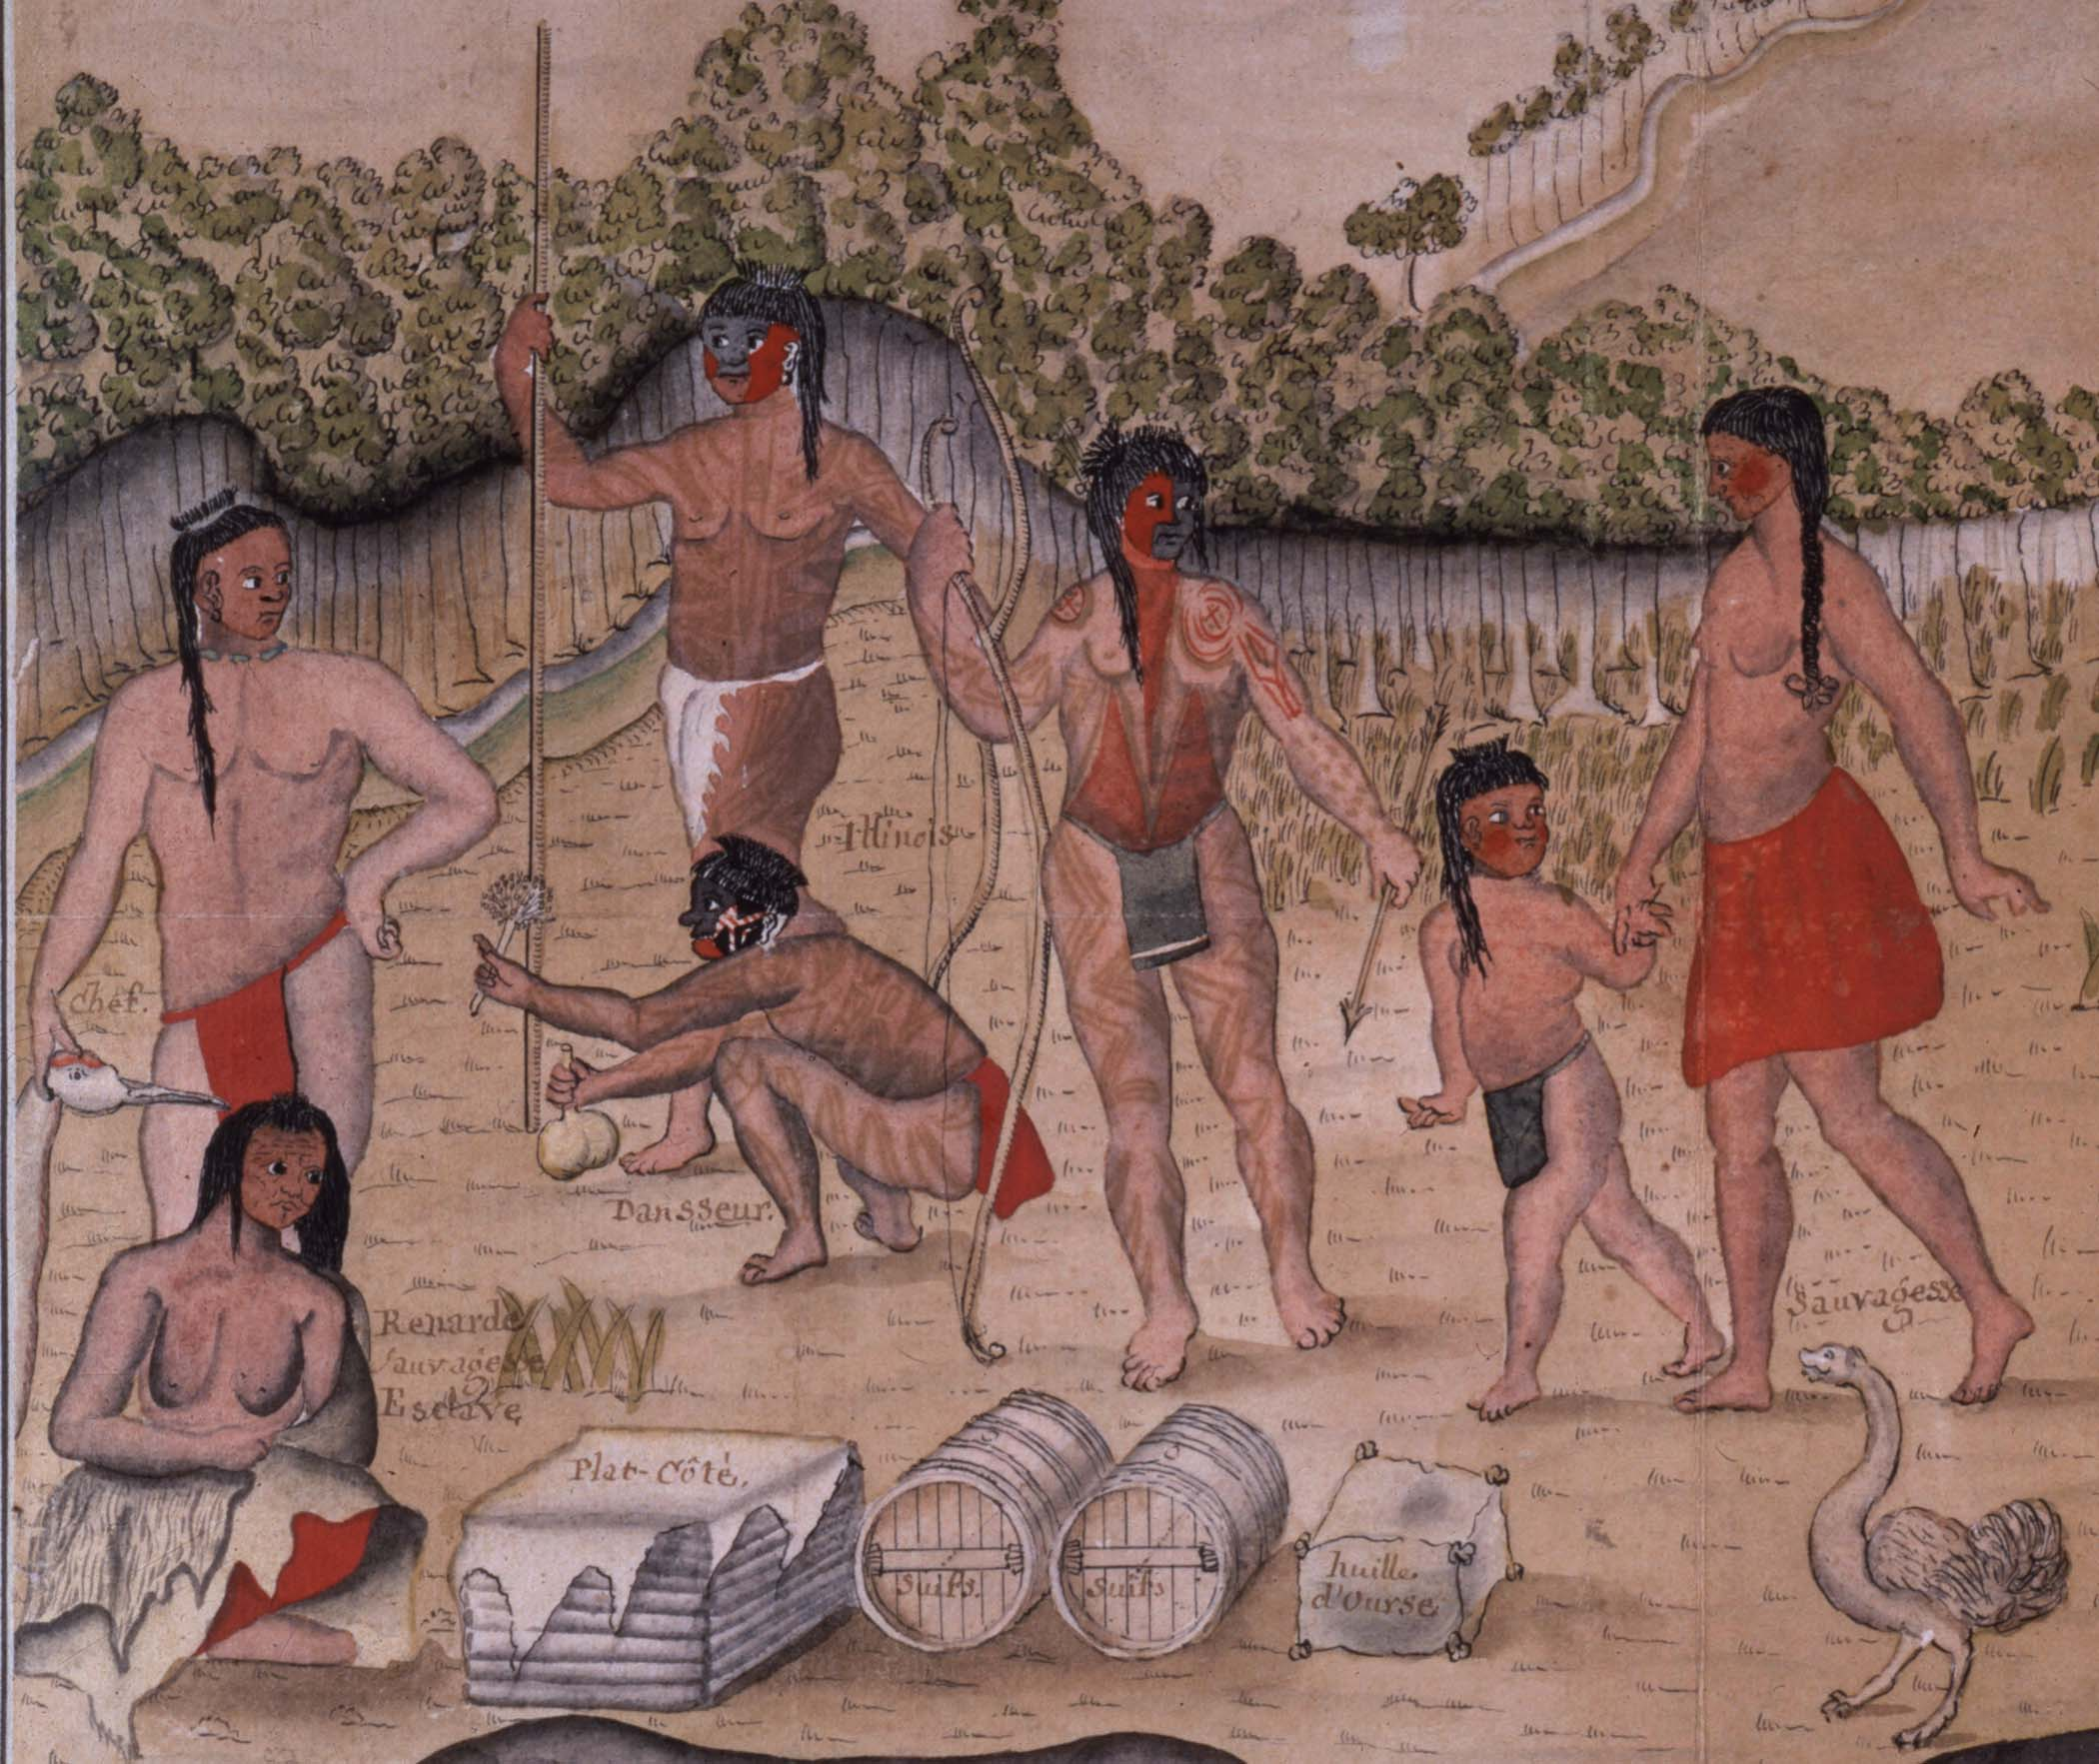 This 18th century painting depicts the Inoca natives. Early French explorers described the Inoca as fine and grace people who were full of life. The men were heavily tattooed and often acted as war chiefs and peace chiefs. Influential women served as peace chiefs, too.